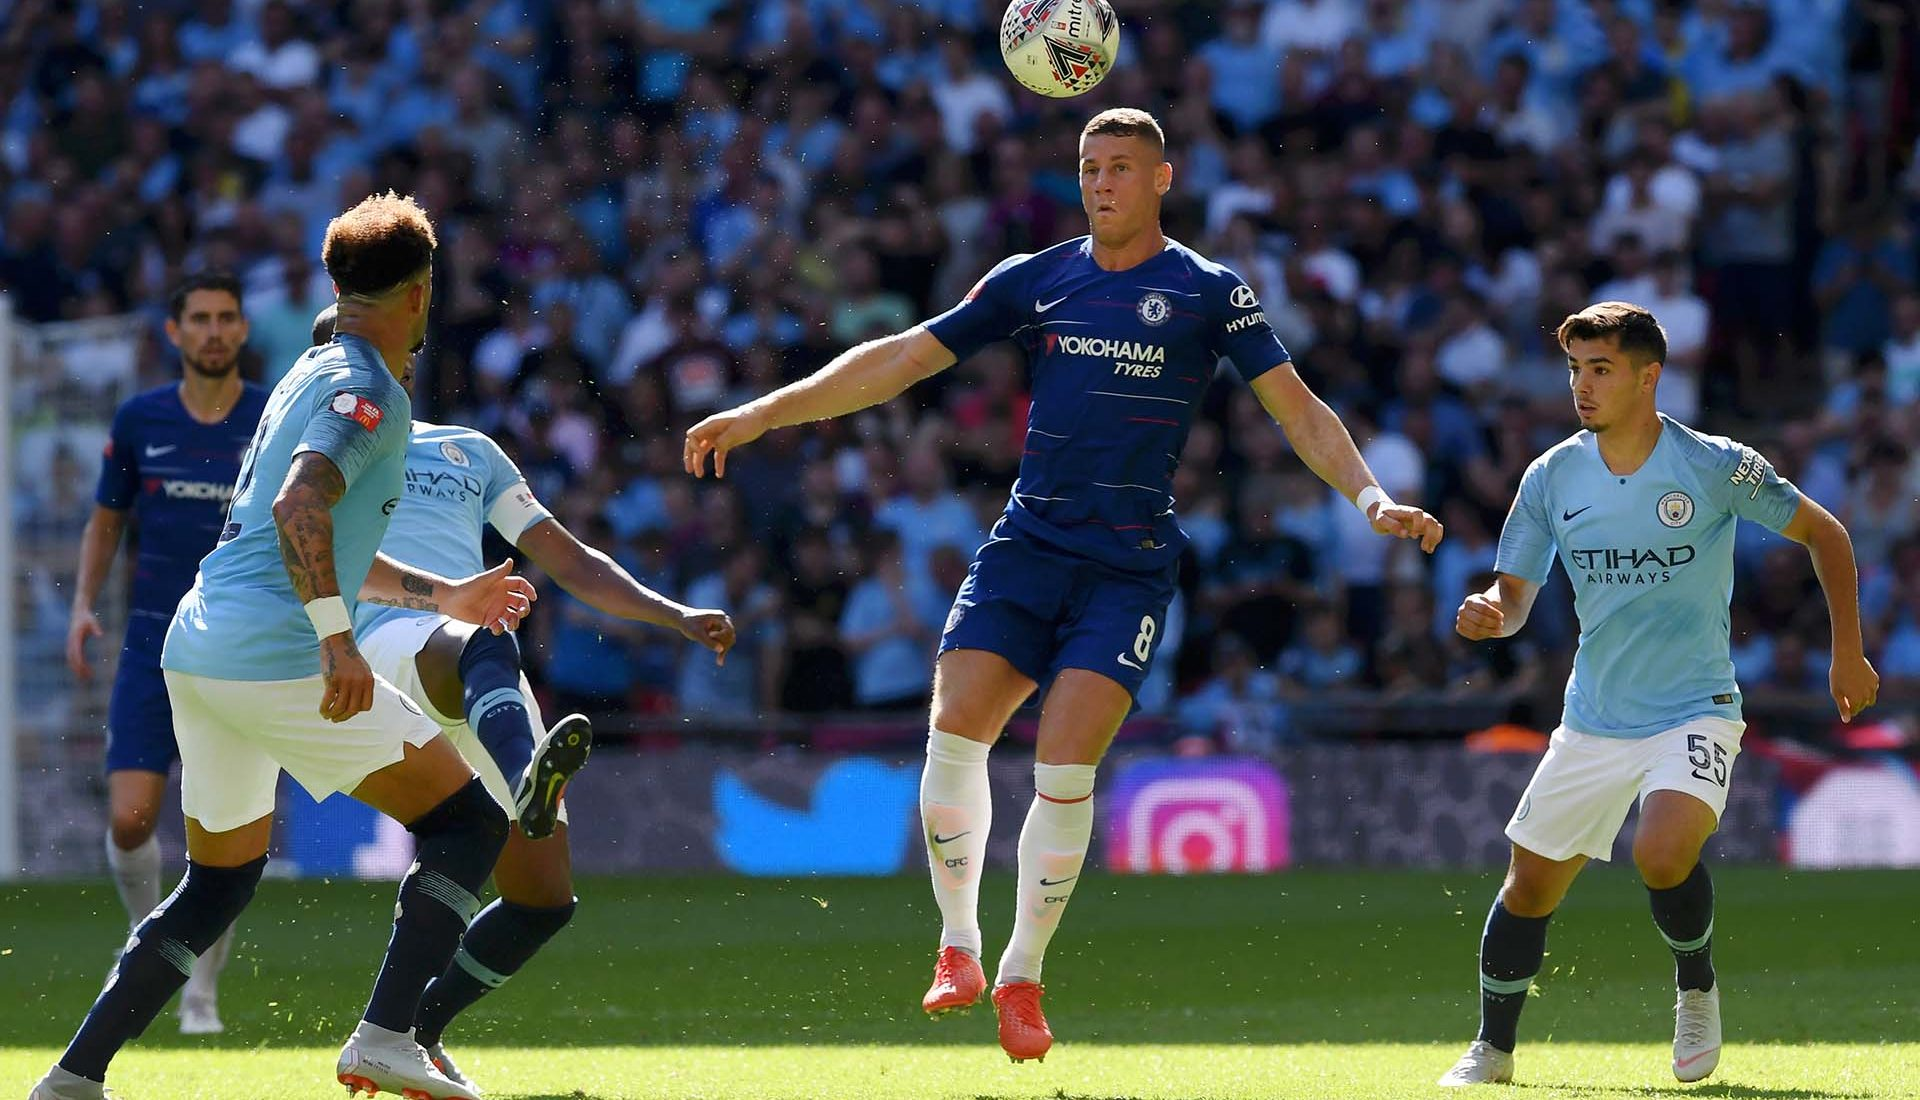 Ross Barkley heads the ball during the FA Community Shield between Manchester City and Chelsea at Wembley Stadium on August 5, 2018 in London.